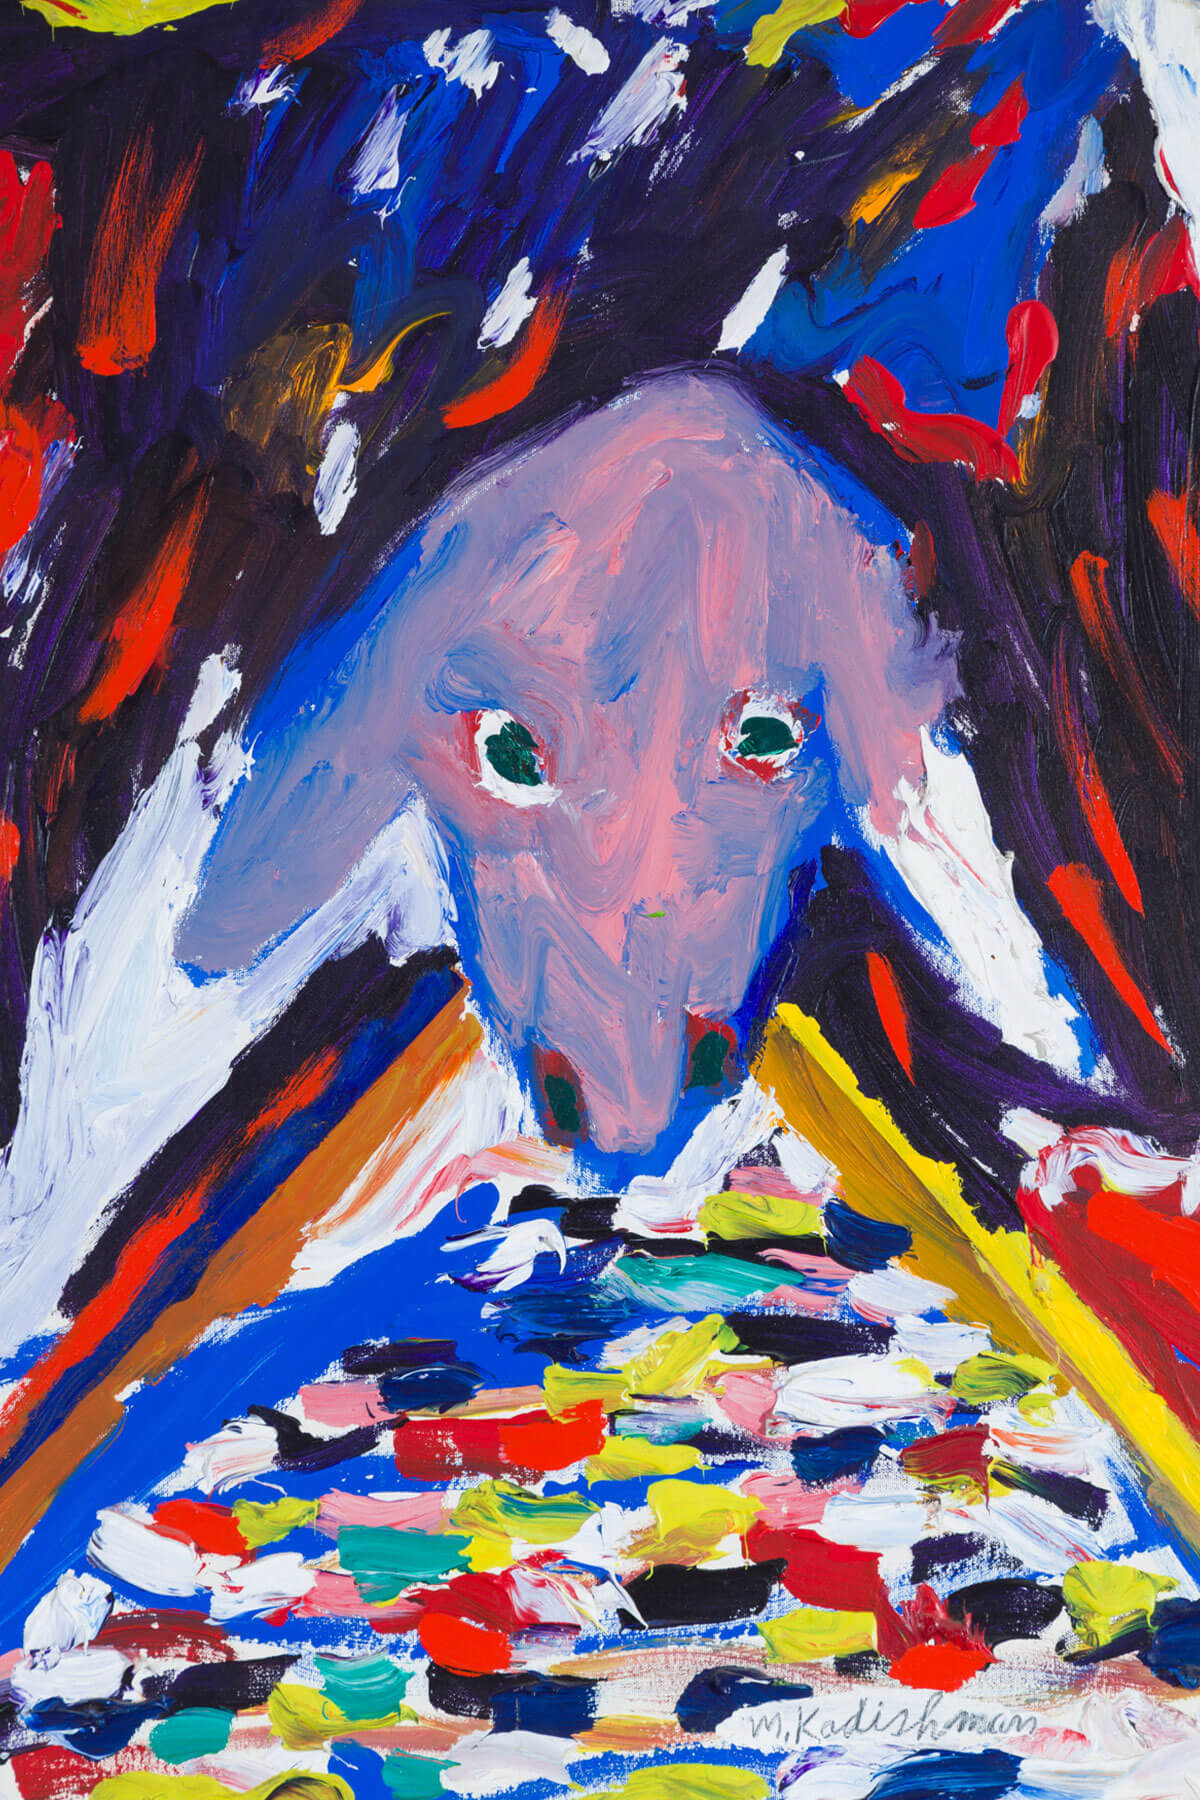 160. Abstract Sheep's Head by Menashe Kadishman (1990)